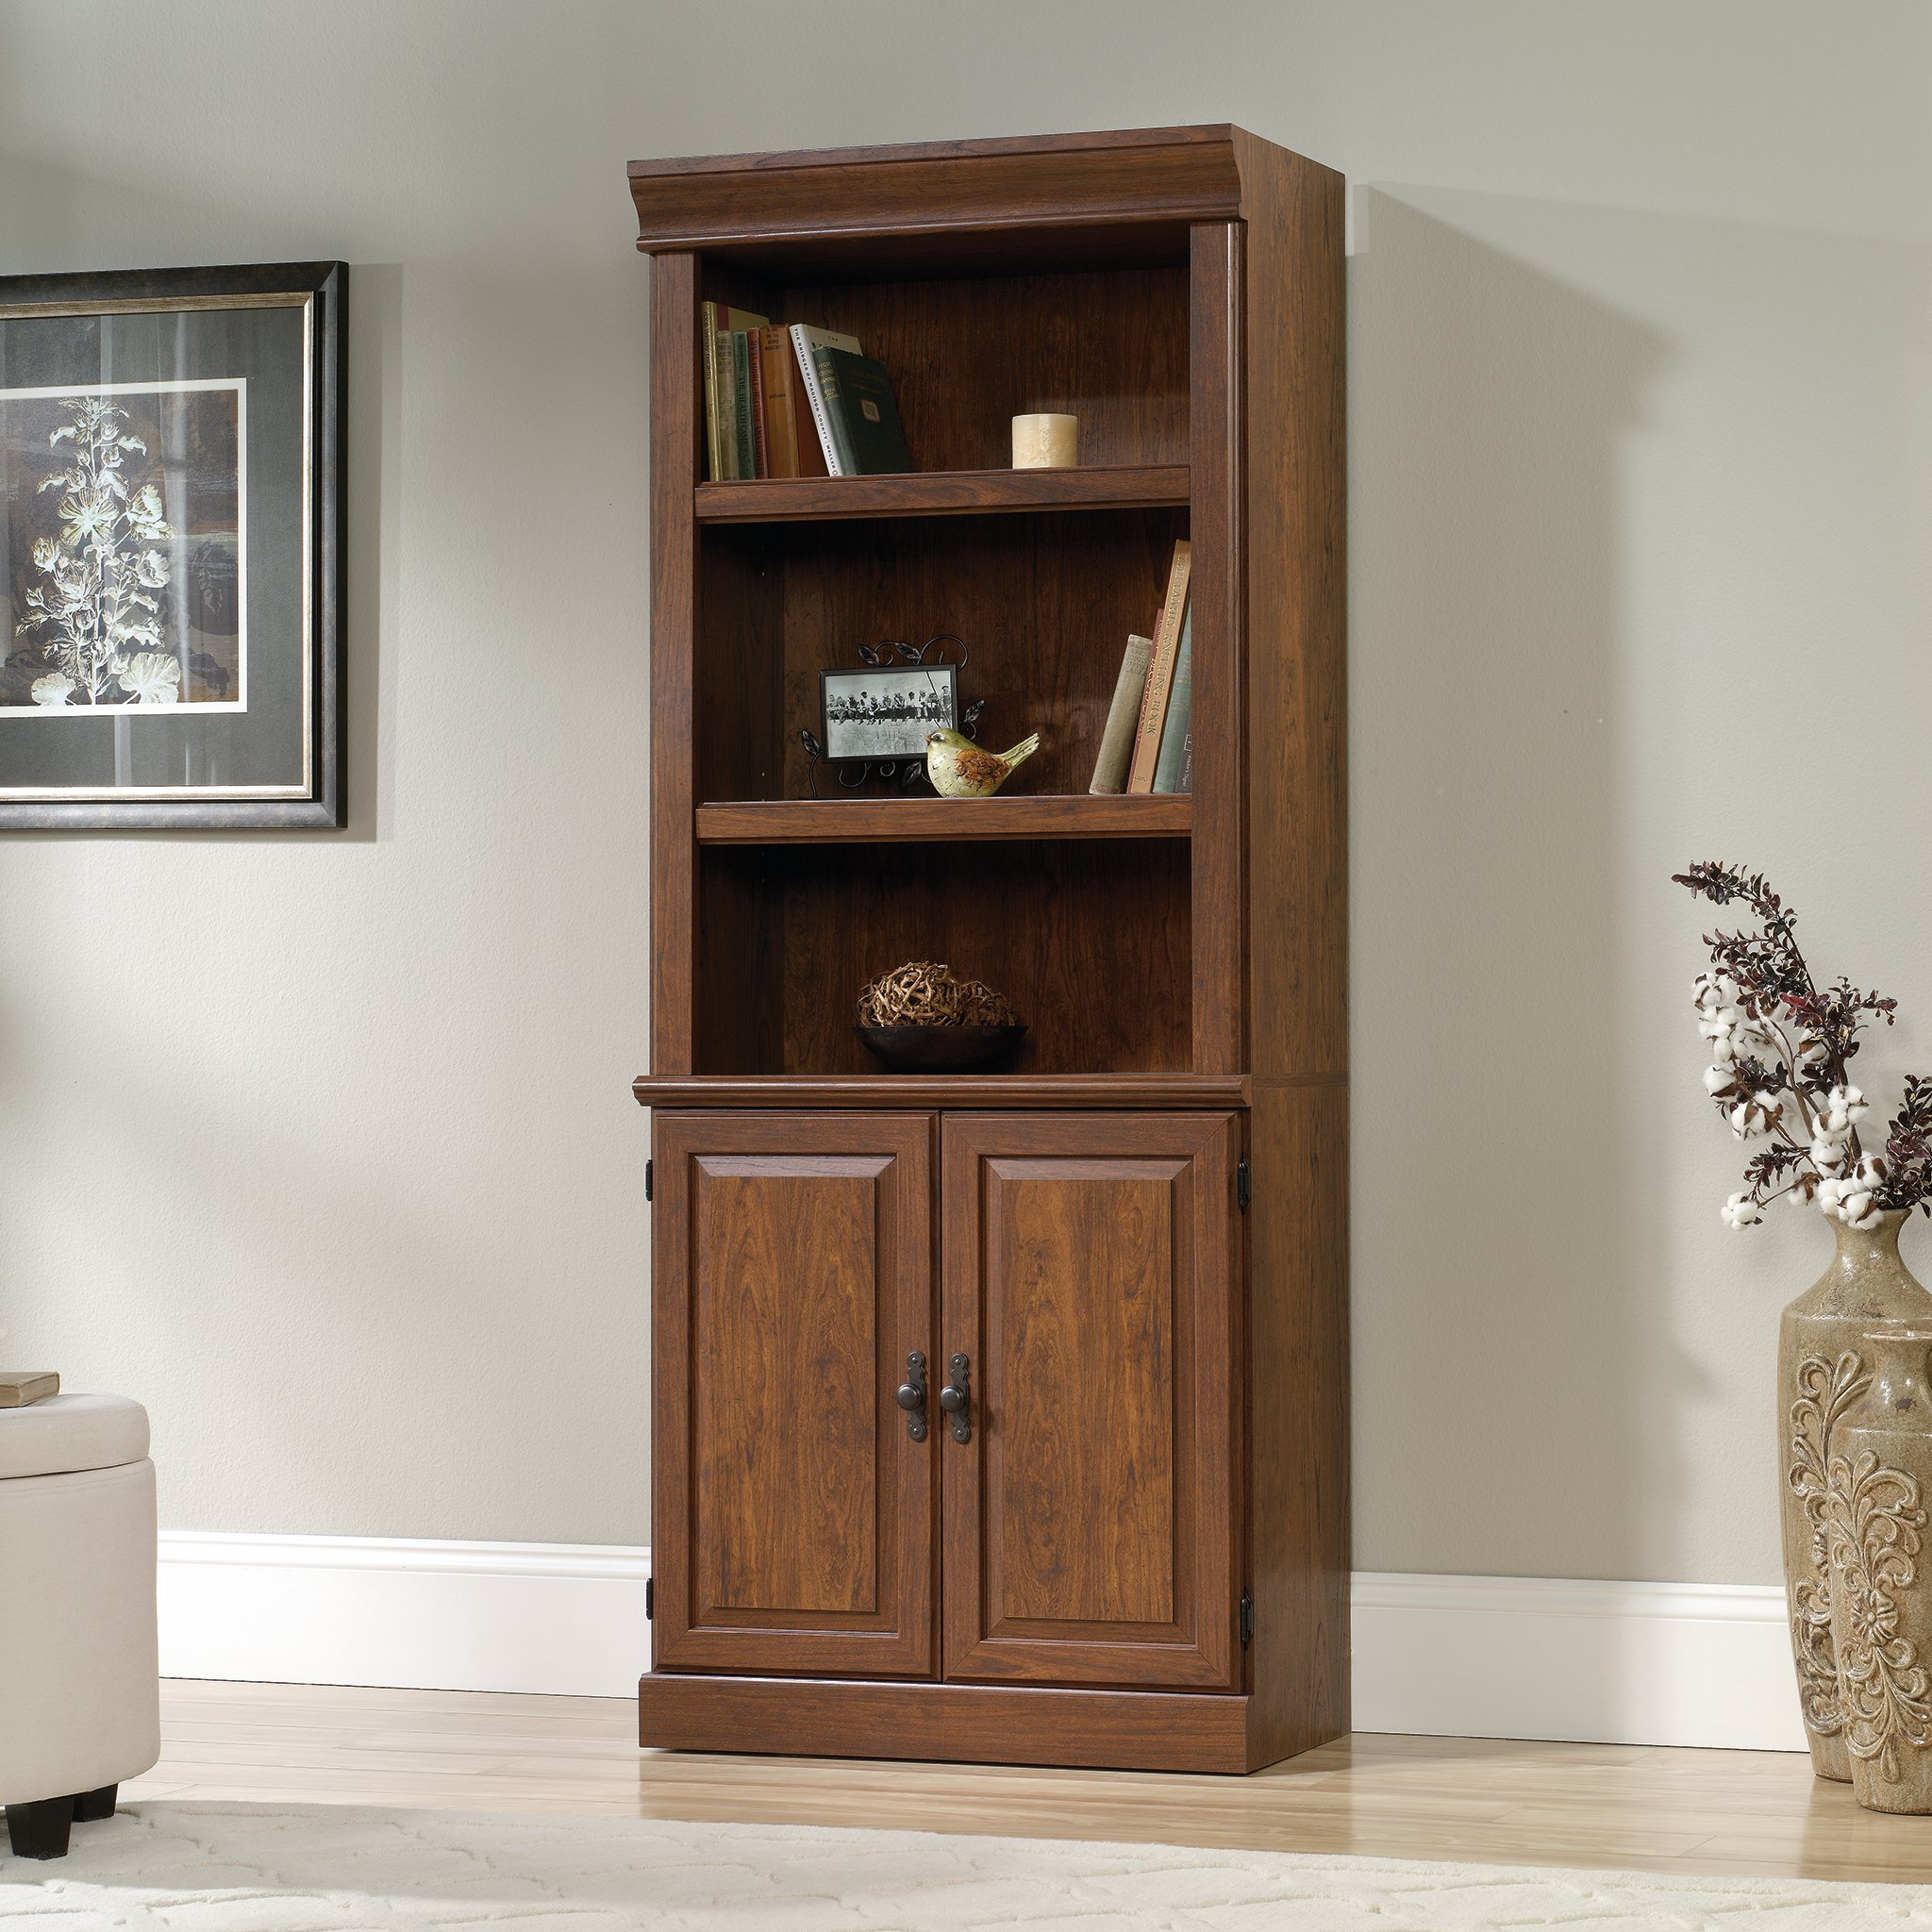 Sauder 418734 Orchard Hills Library with Doors, L: 29.45'' x W: 13.47'' x H: 71.50'', Milled Cherry finish by Sauder (Image #2)